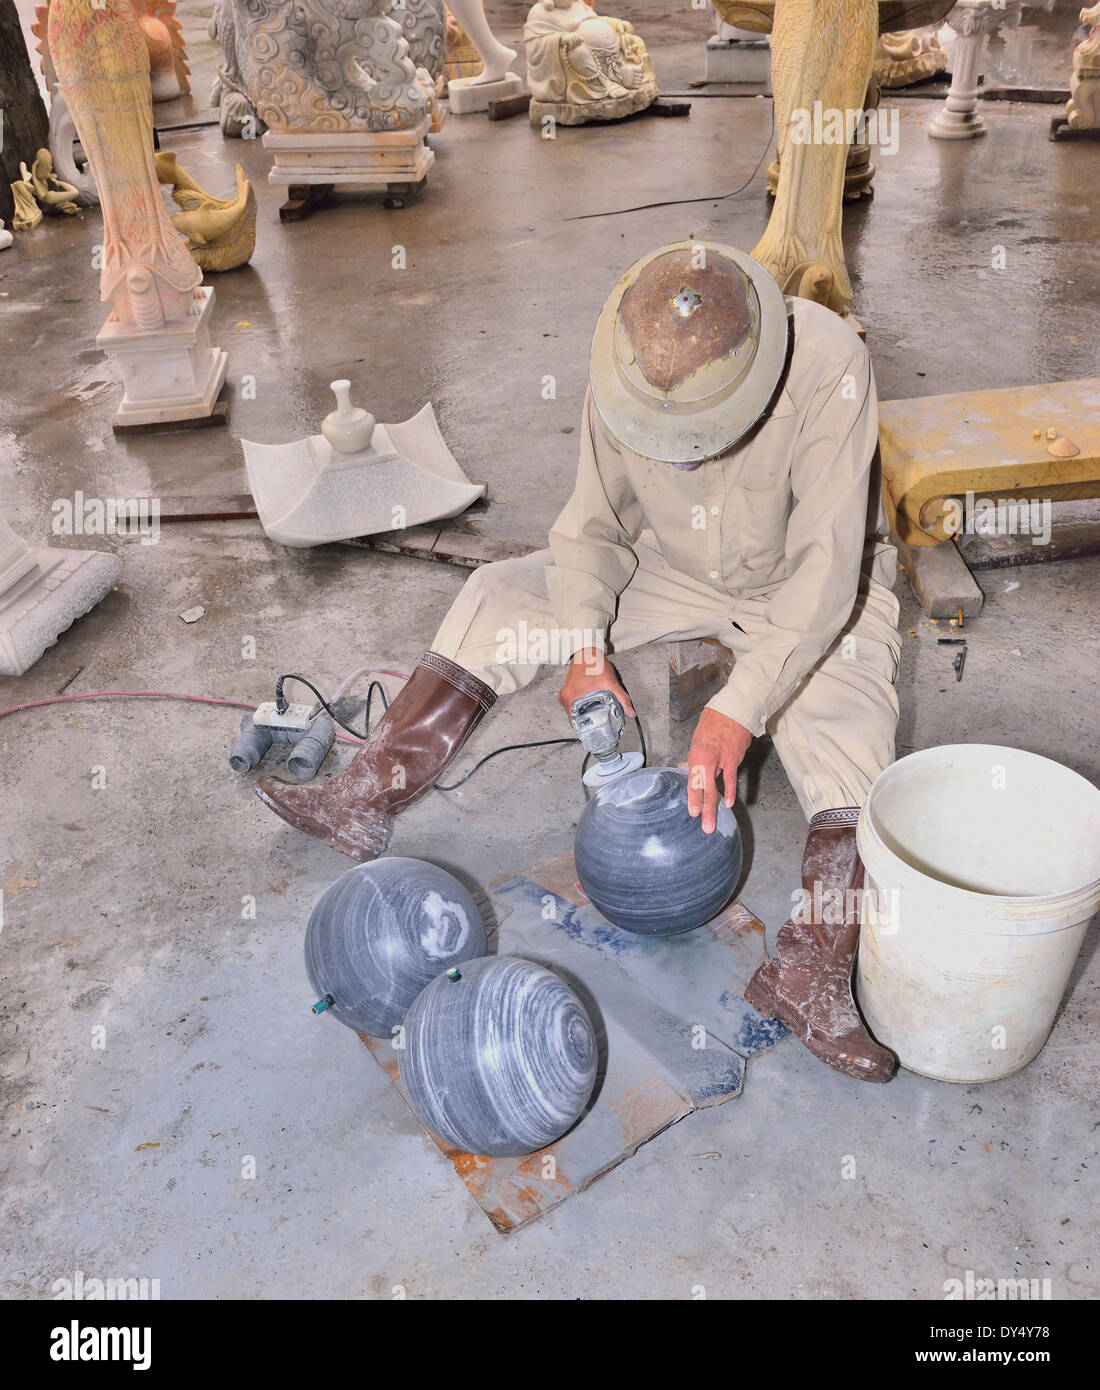 Stone cutter shaping rock with grinder and carving into small ornaments for tourists to buy at the Hong Ngoc Handicraft center. - Stock Image